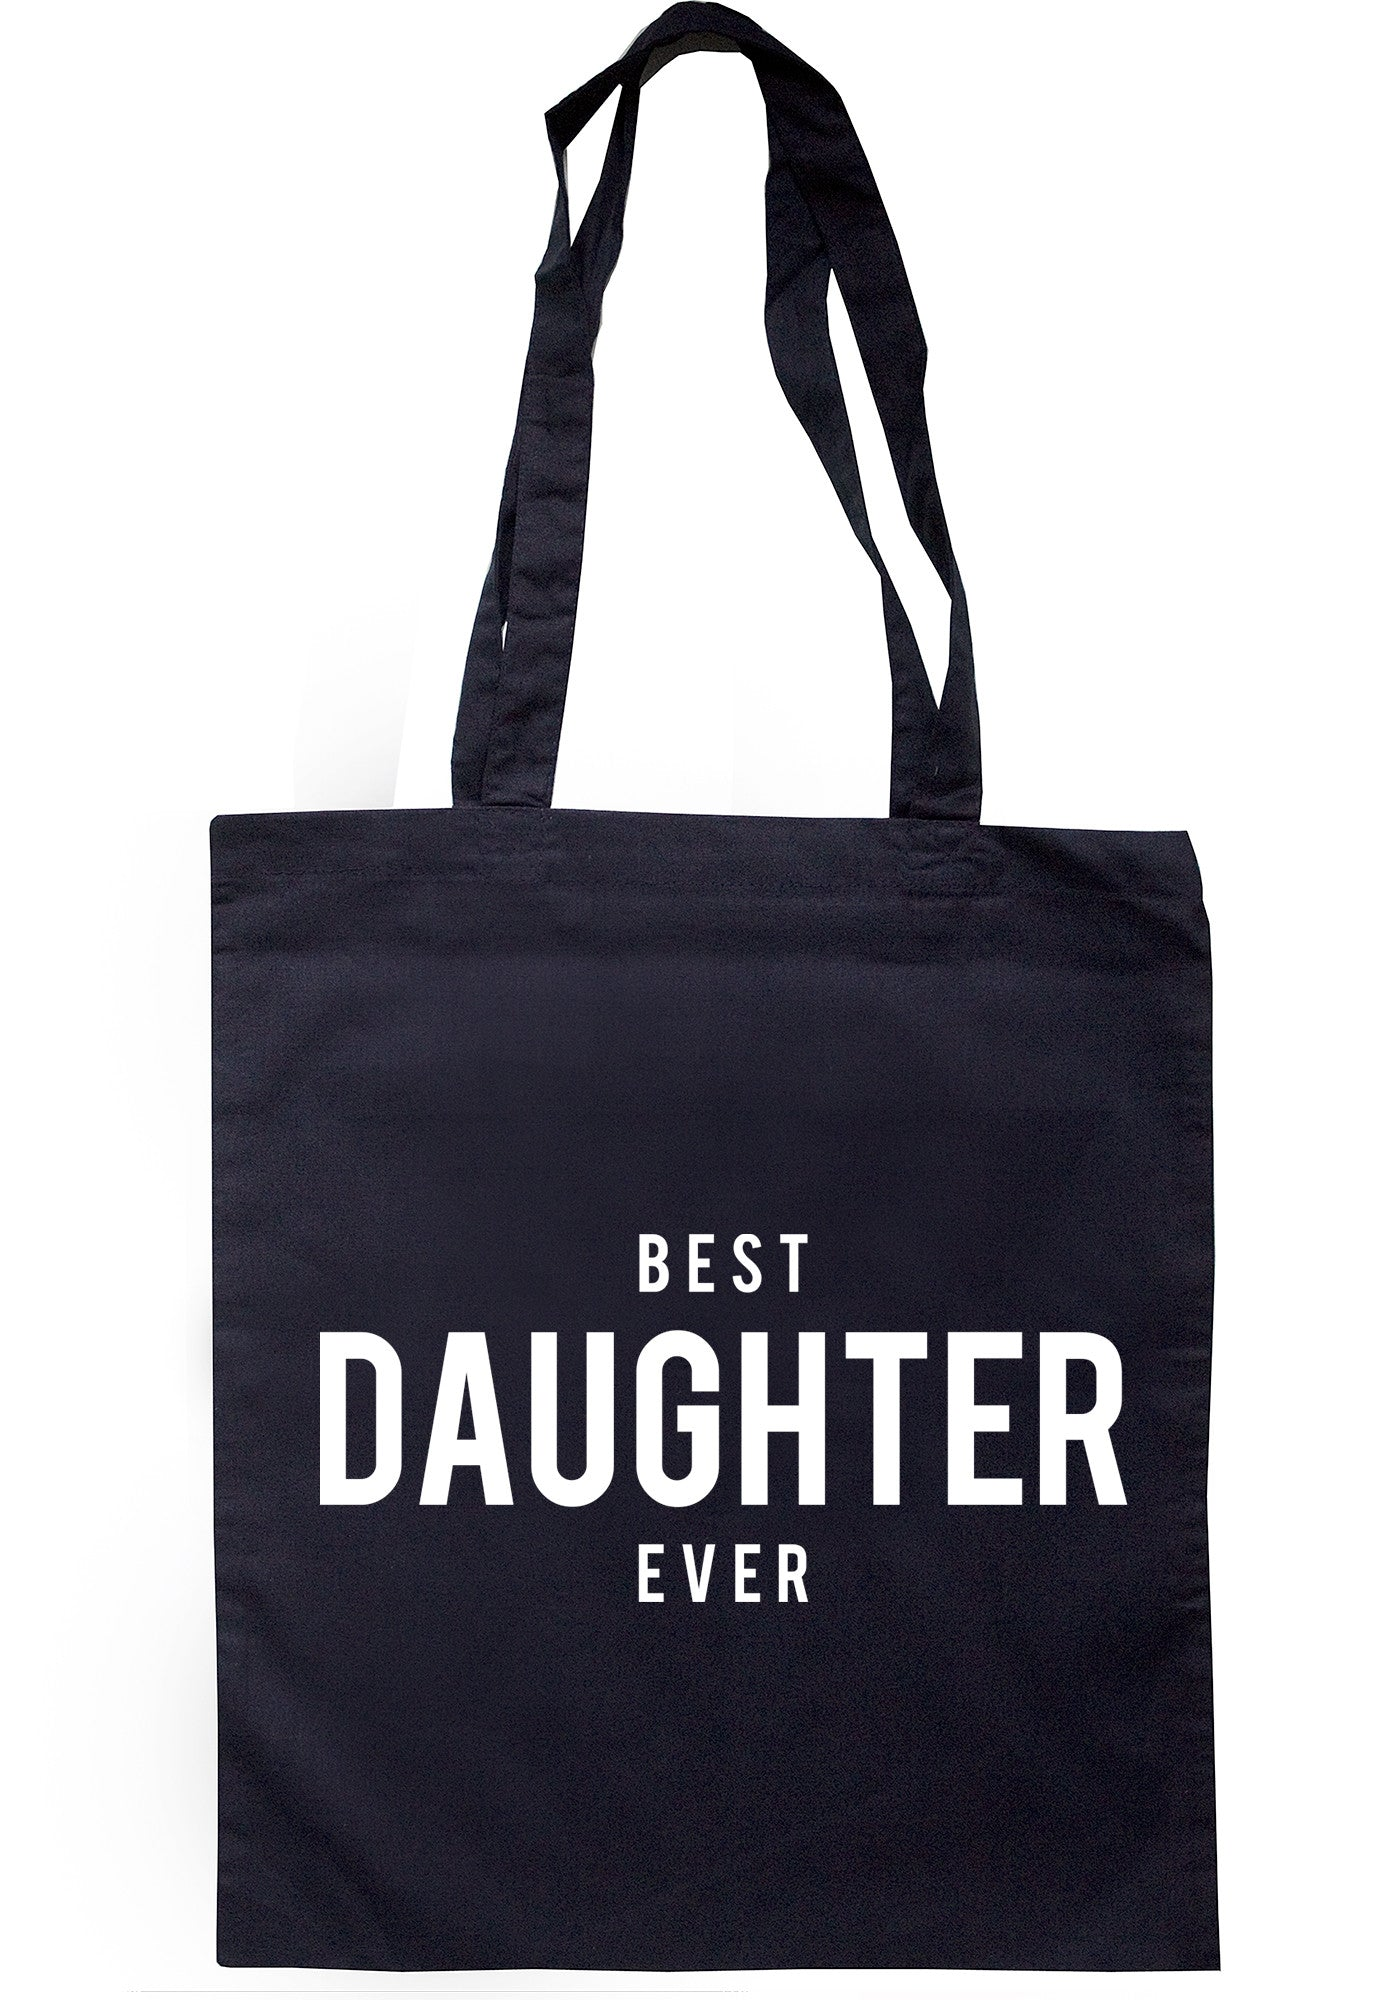 Best Daughter Ever Tote Bag TB1245 - Illustrated Identity Ltd.